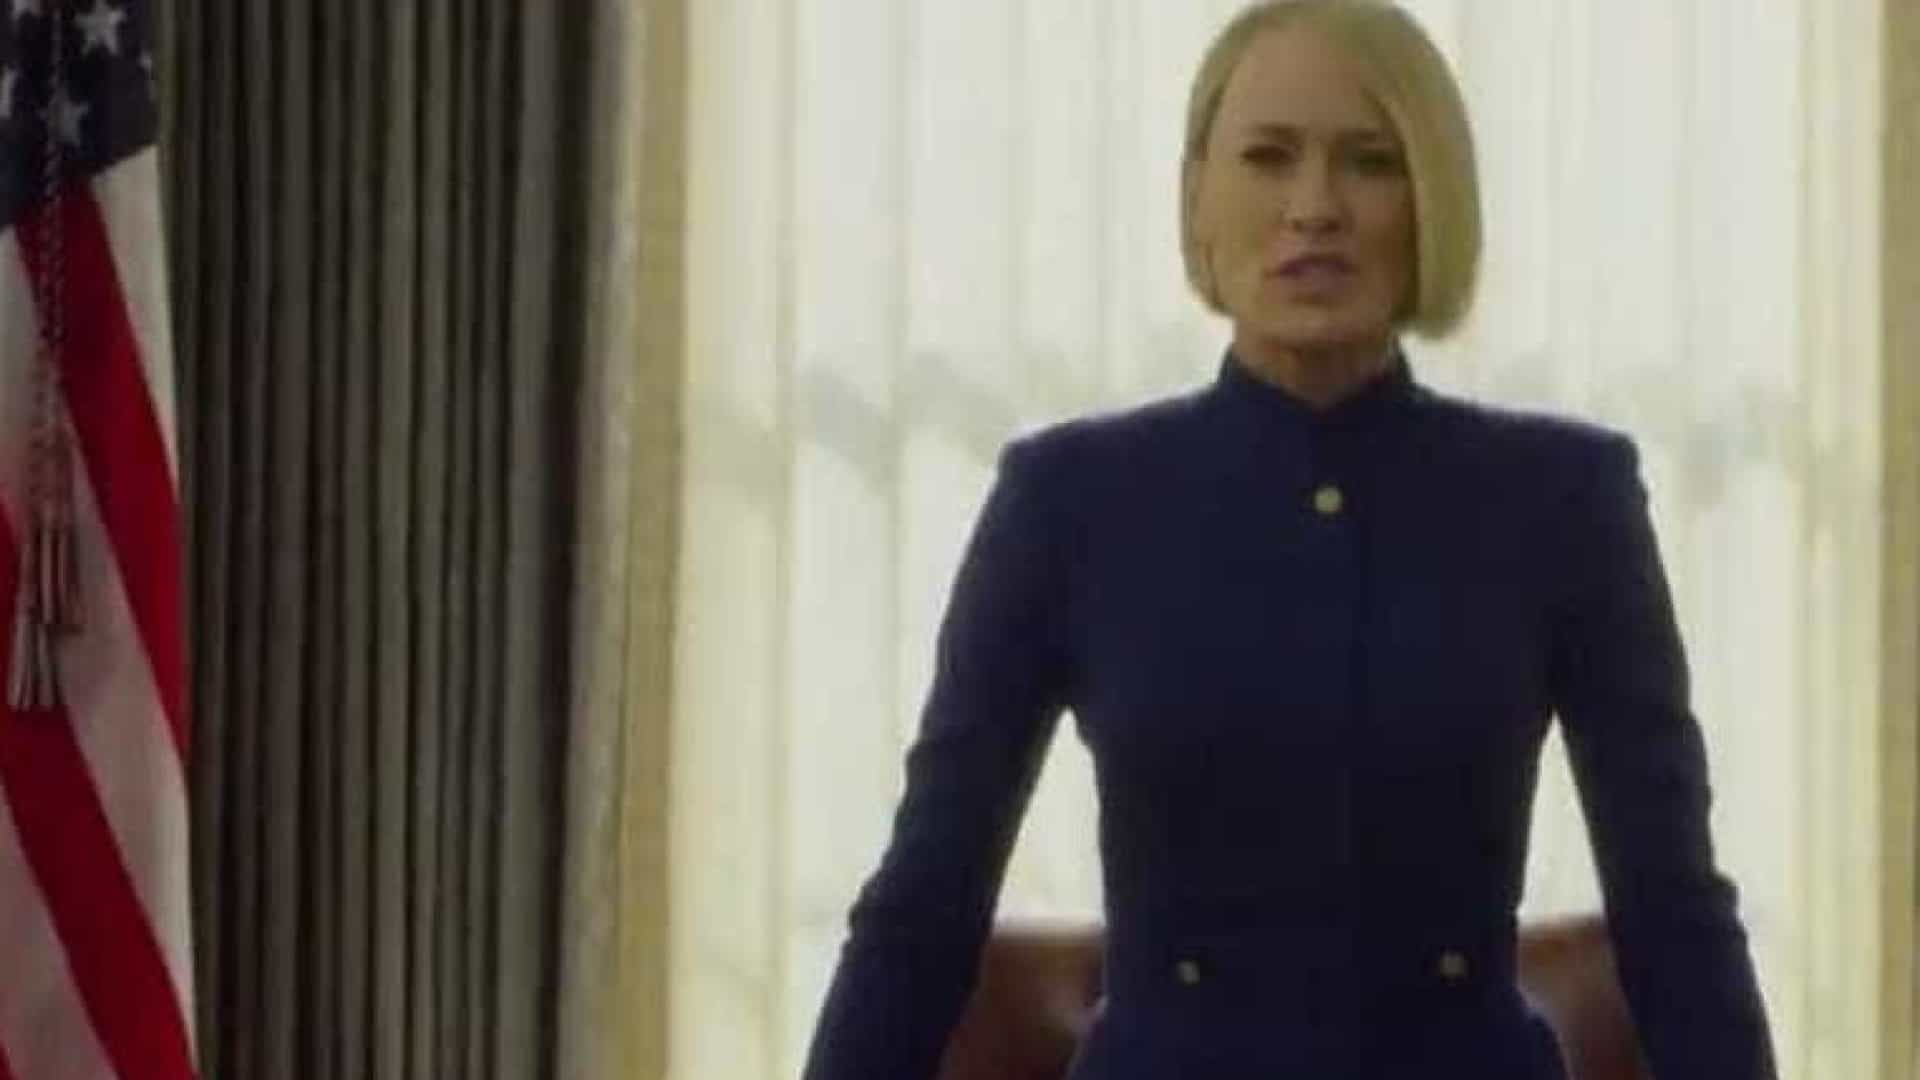 Claire Underwood assume presidência em 1º trailer de House of Cards